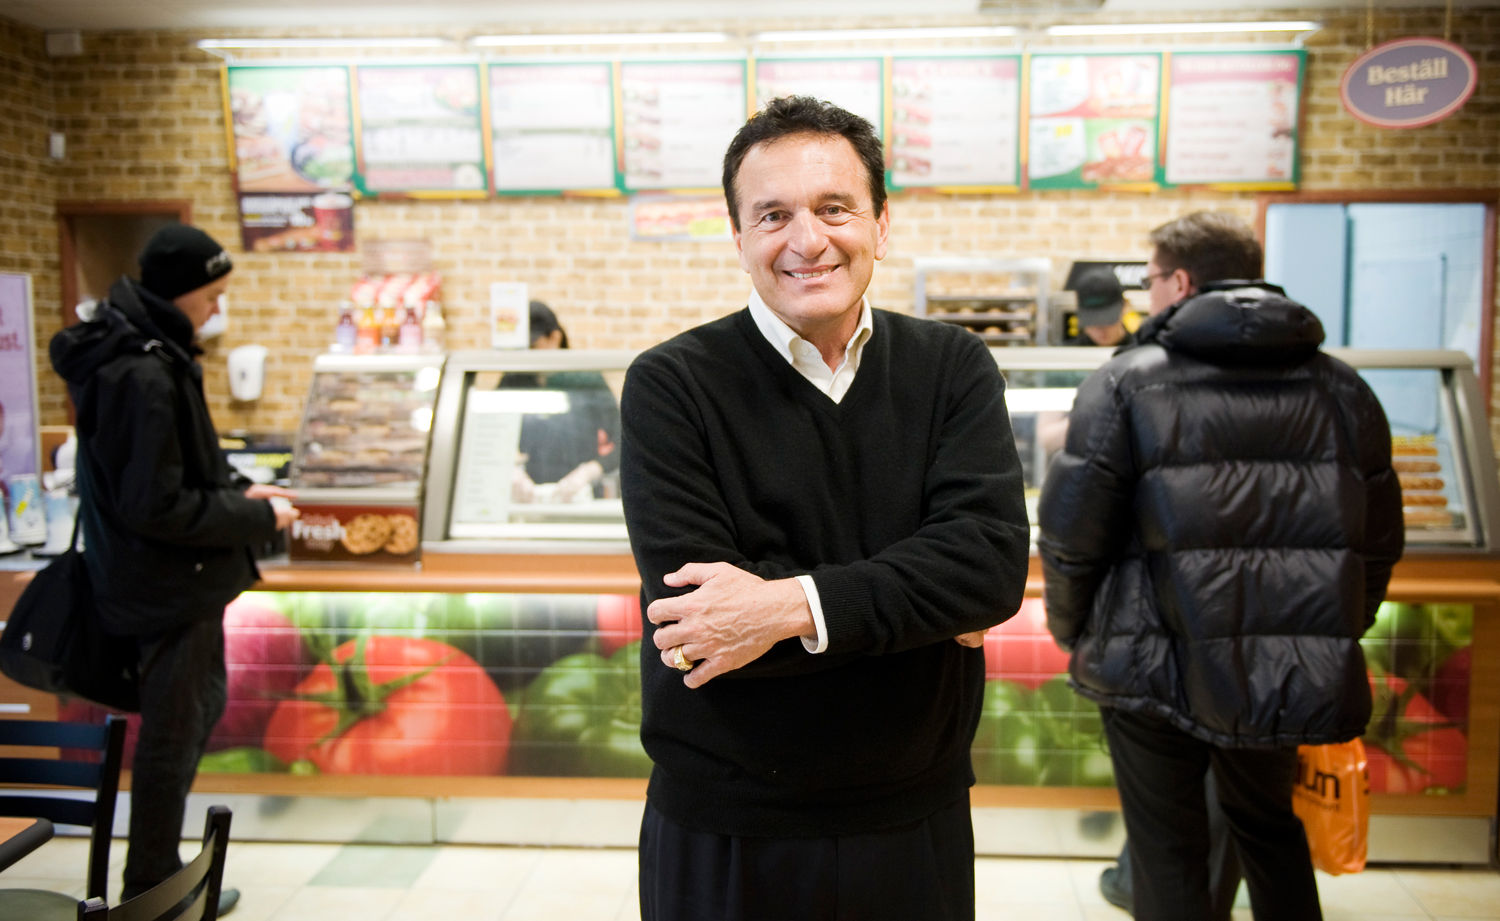 Fred DeLuca, President and founder of sandwich maker Subway, poses in a Subway restaurant at